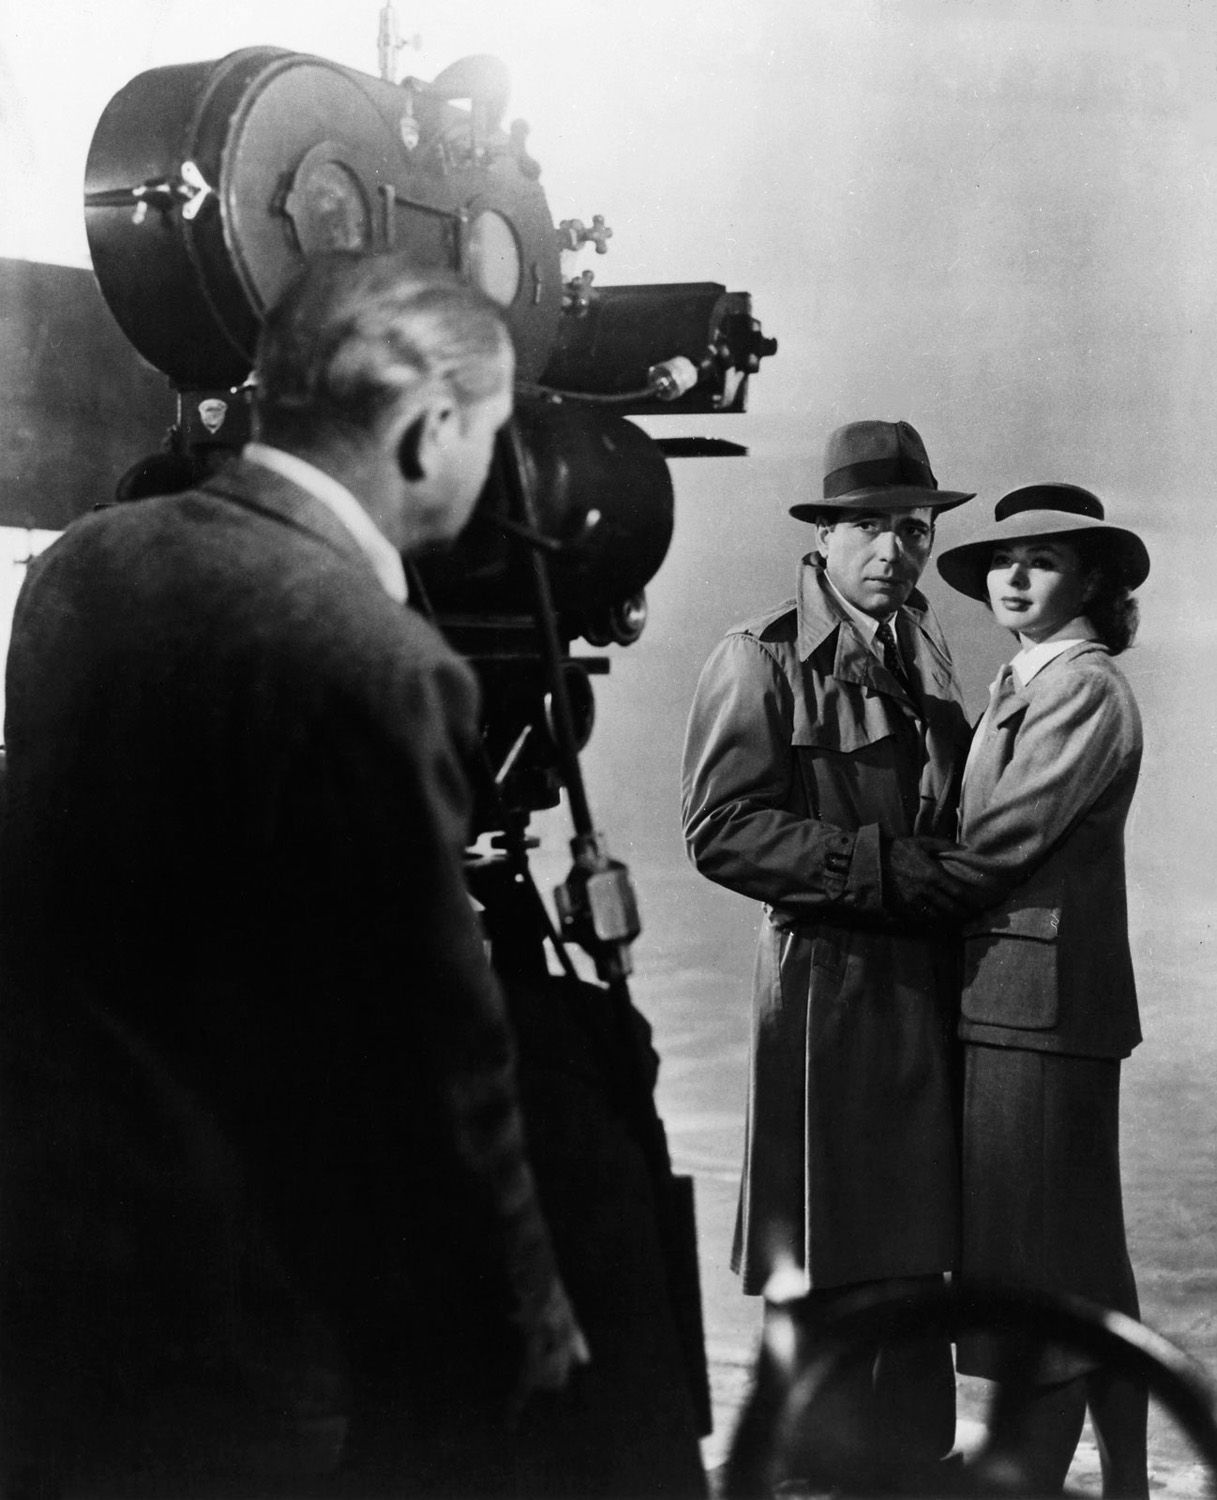 "This is a rare image from behind the camera on the set of CASABLANCA, showing cinematographer Arthur Edeson and stars Humphrey Bogart and Ingrid Bergman (1942). Edeson filmed Ms. Bergman primarily from her left side, using a gauze filter to soften her image, and he placed lights about the set to help catch the sparkle of her eyes. The end result was that Bergman's character came off ""sad, tender and nostalgic"". Film noir lighting was used throughout, but is especially noticeable toward the…"